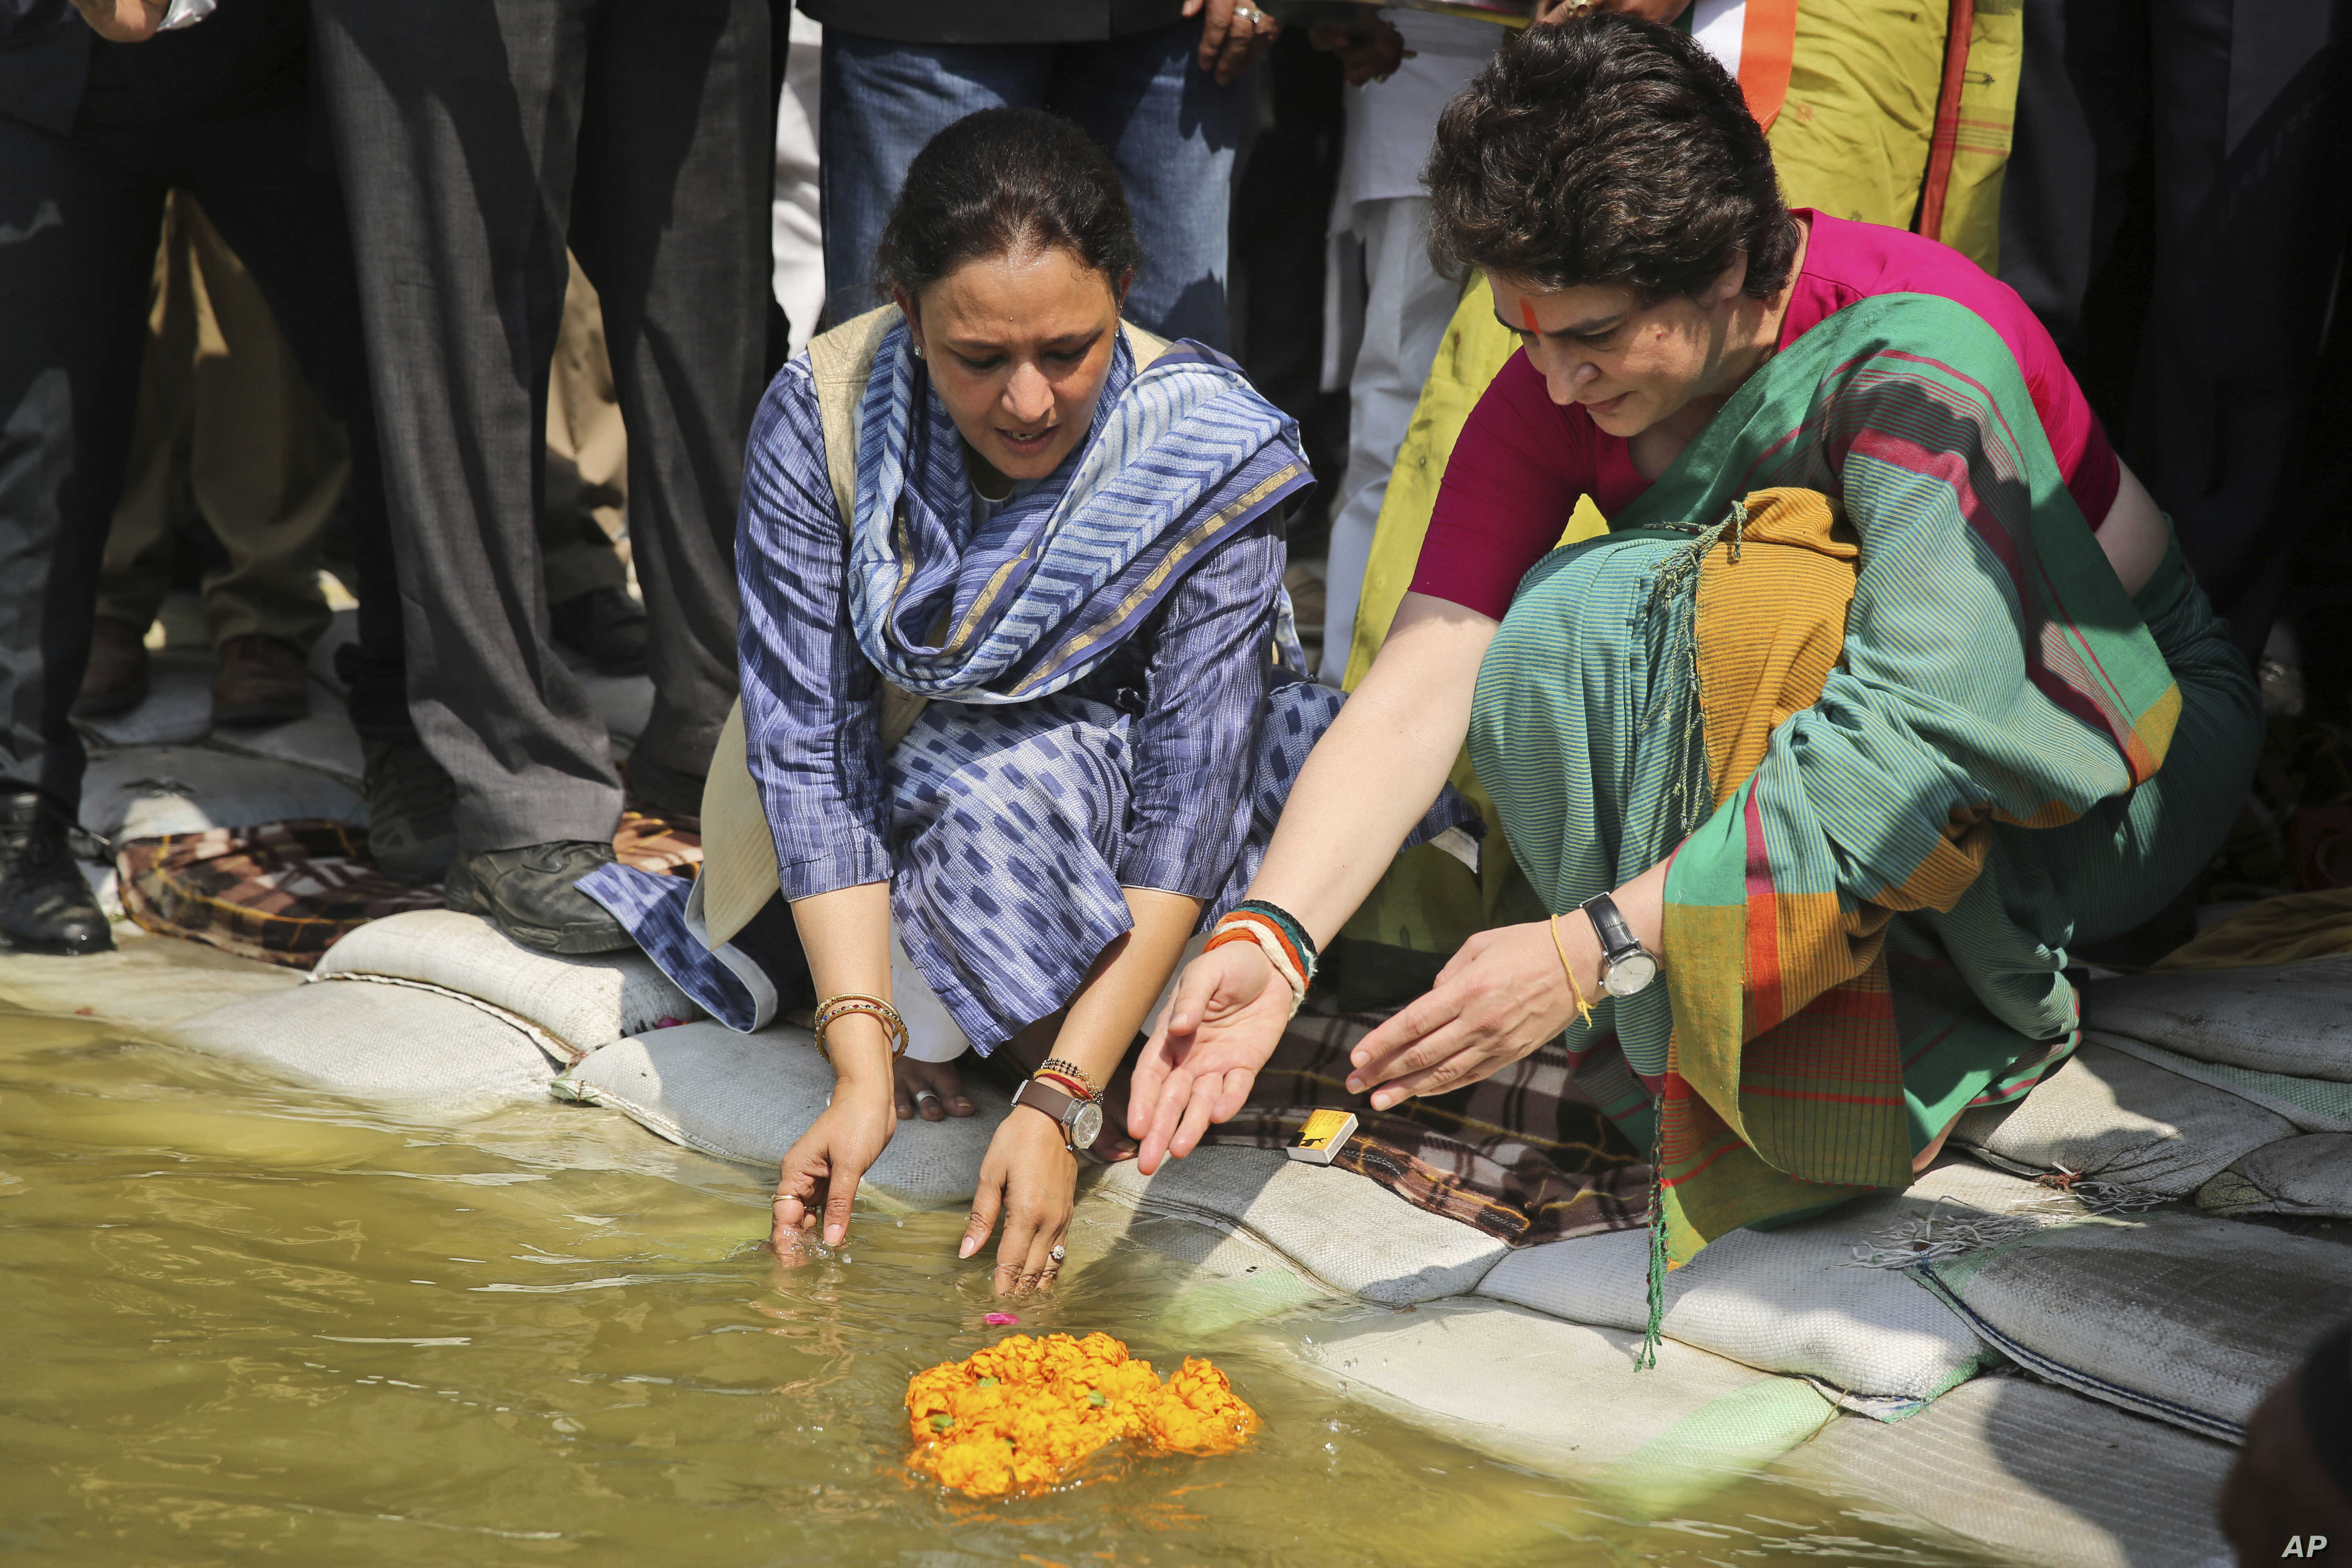 Congress party General Secretary and eastern Uttar Pradesh state in-charge Priyanka Gandhi Vadra, right, prays at the Sangam, the confluence of sacred rivers the Yamuna, the Ganges and the mythical Saraswati, in Prayagraj, India, March 18, 2019.